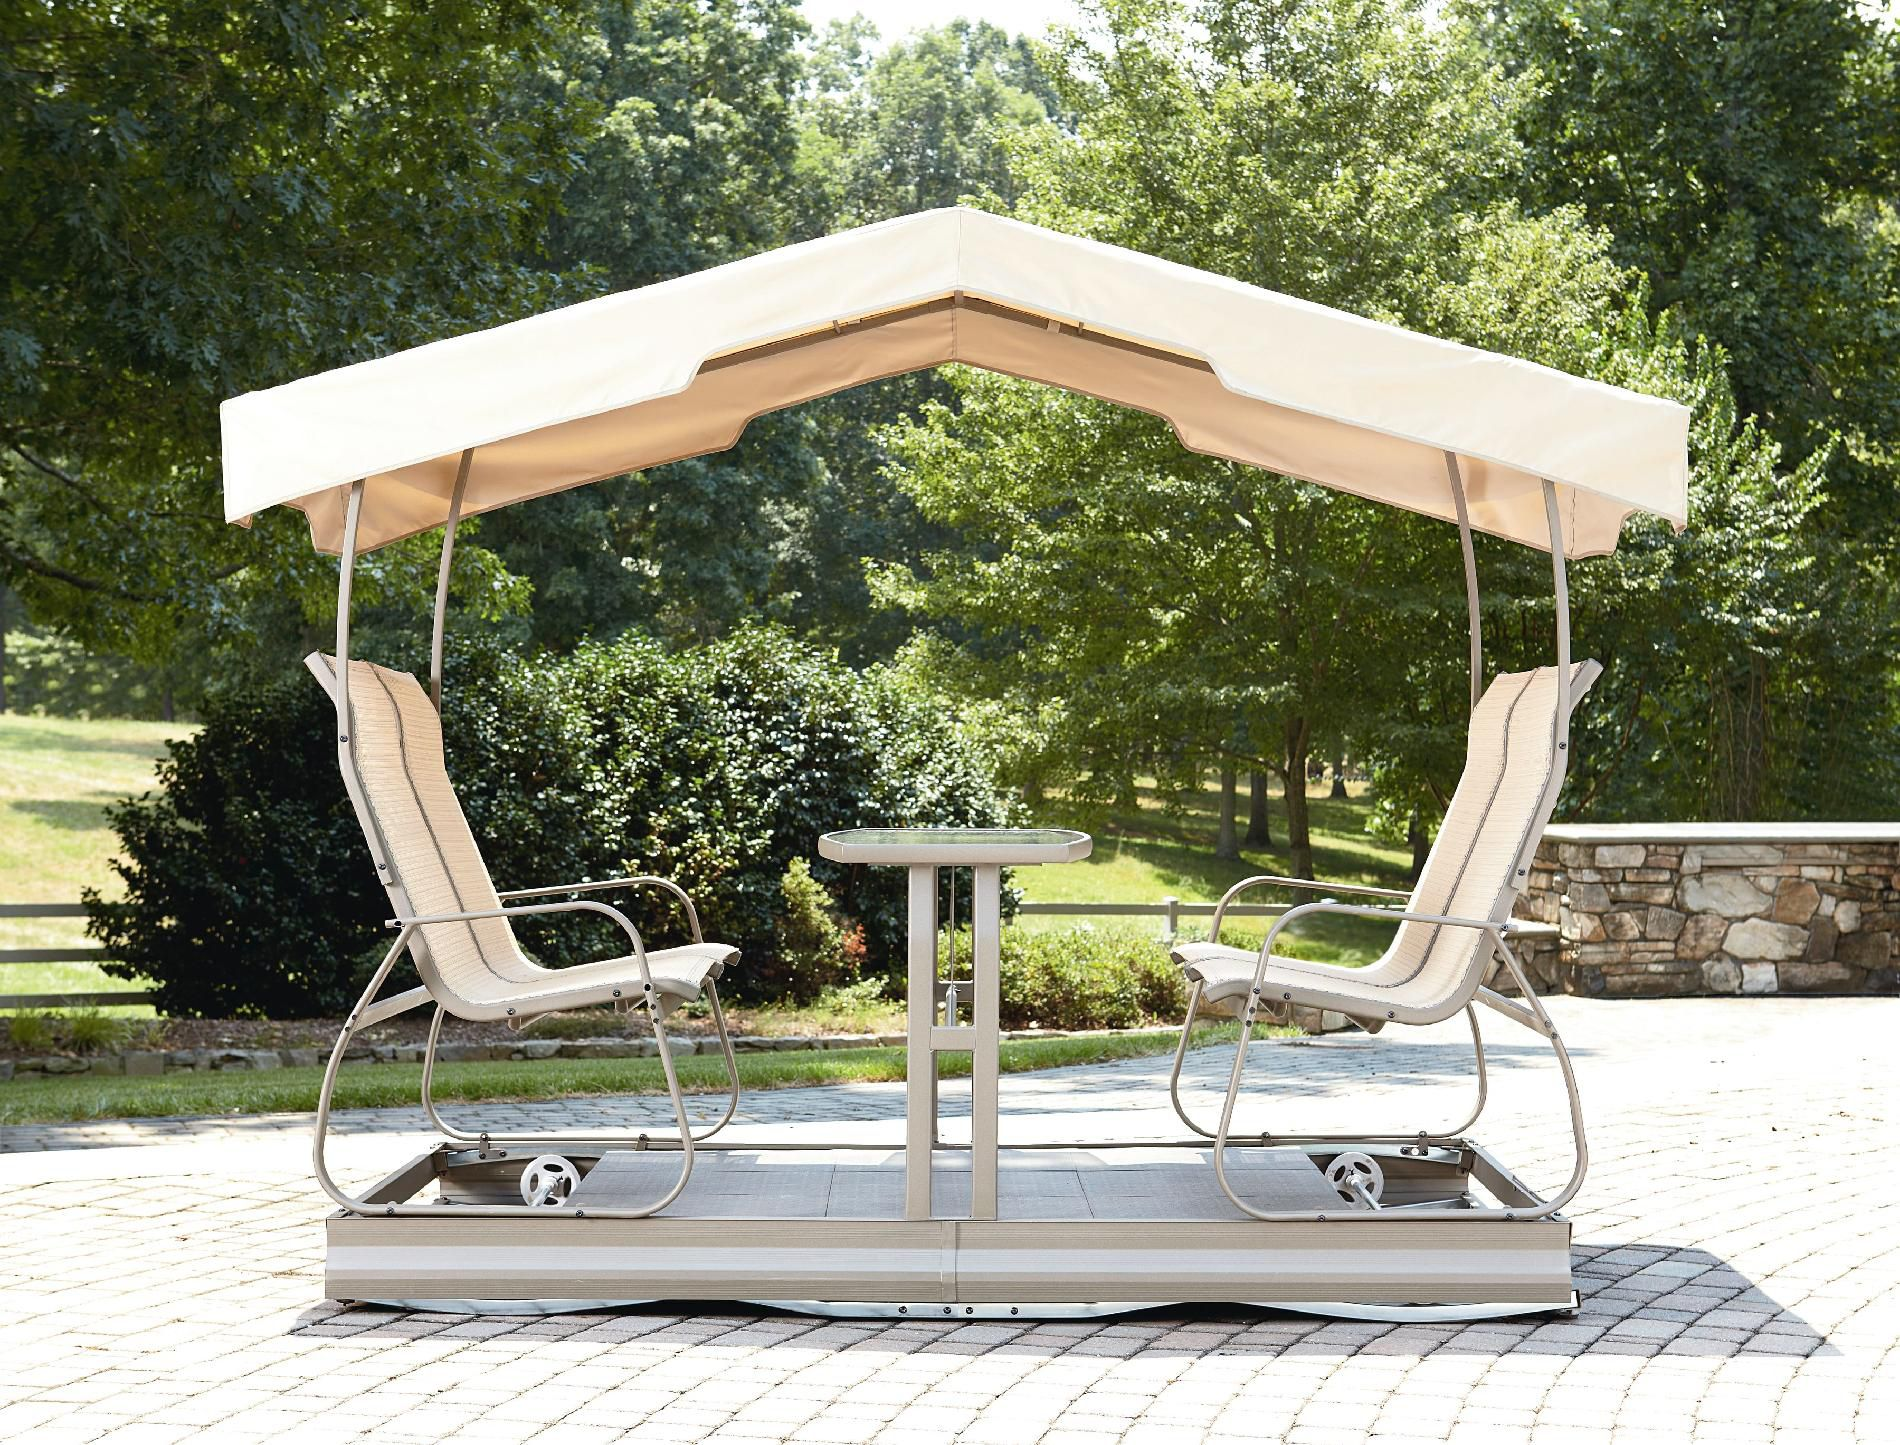 Image of: outdoor glider chair style